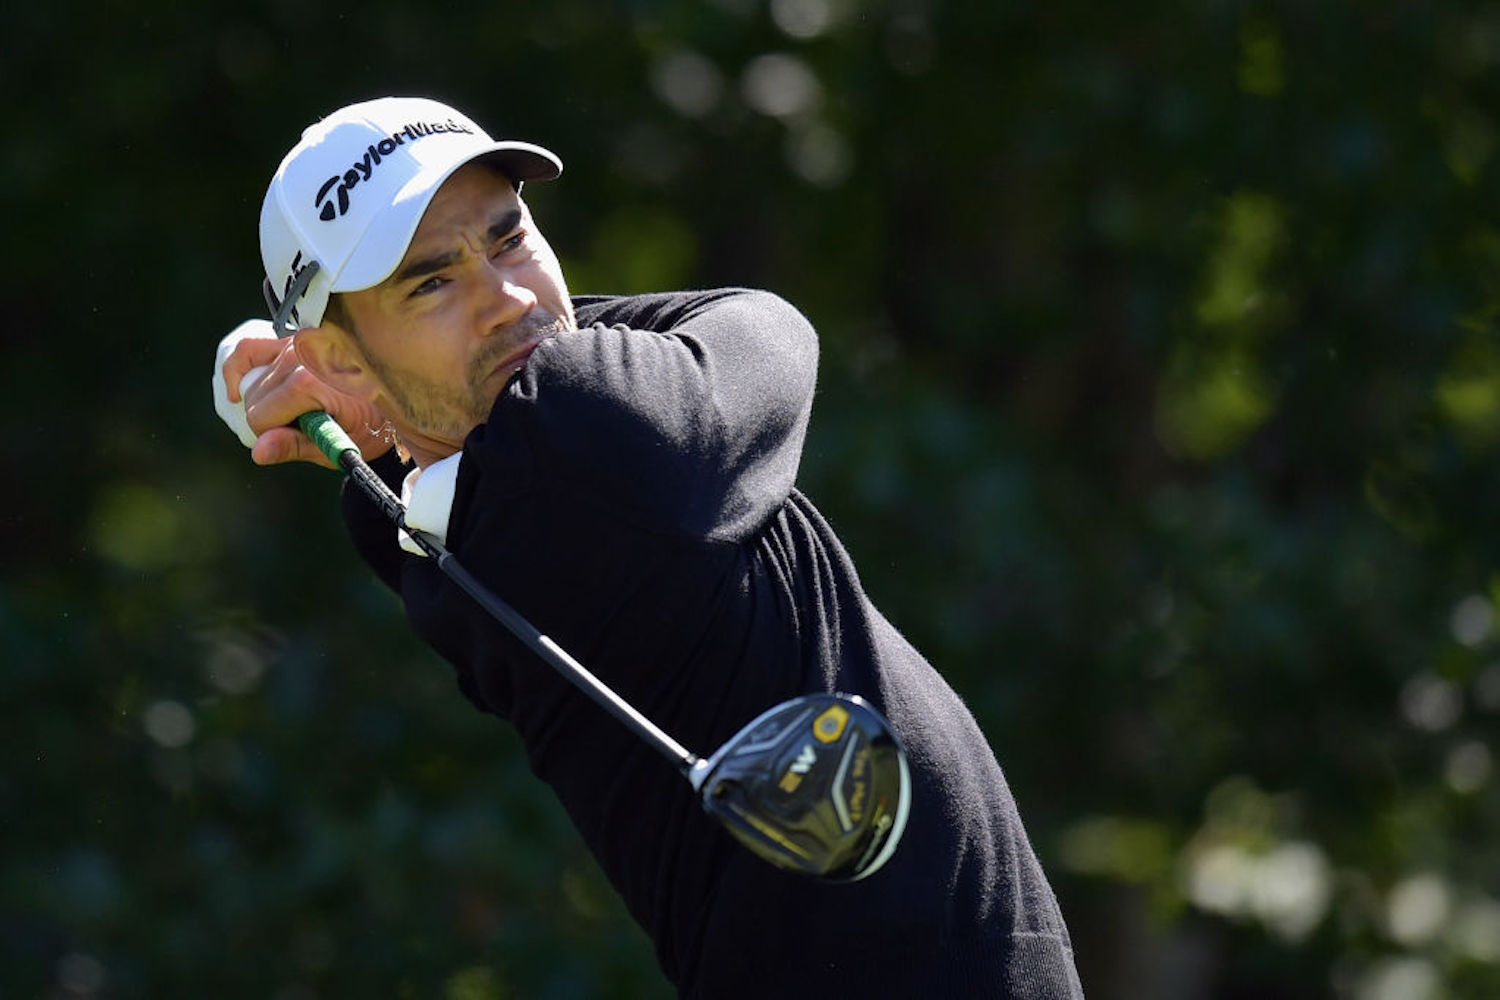 Camilo Villegas Never Shied Away From His Emotions Before His Daughter's Tragic Death